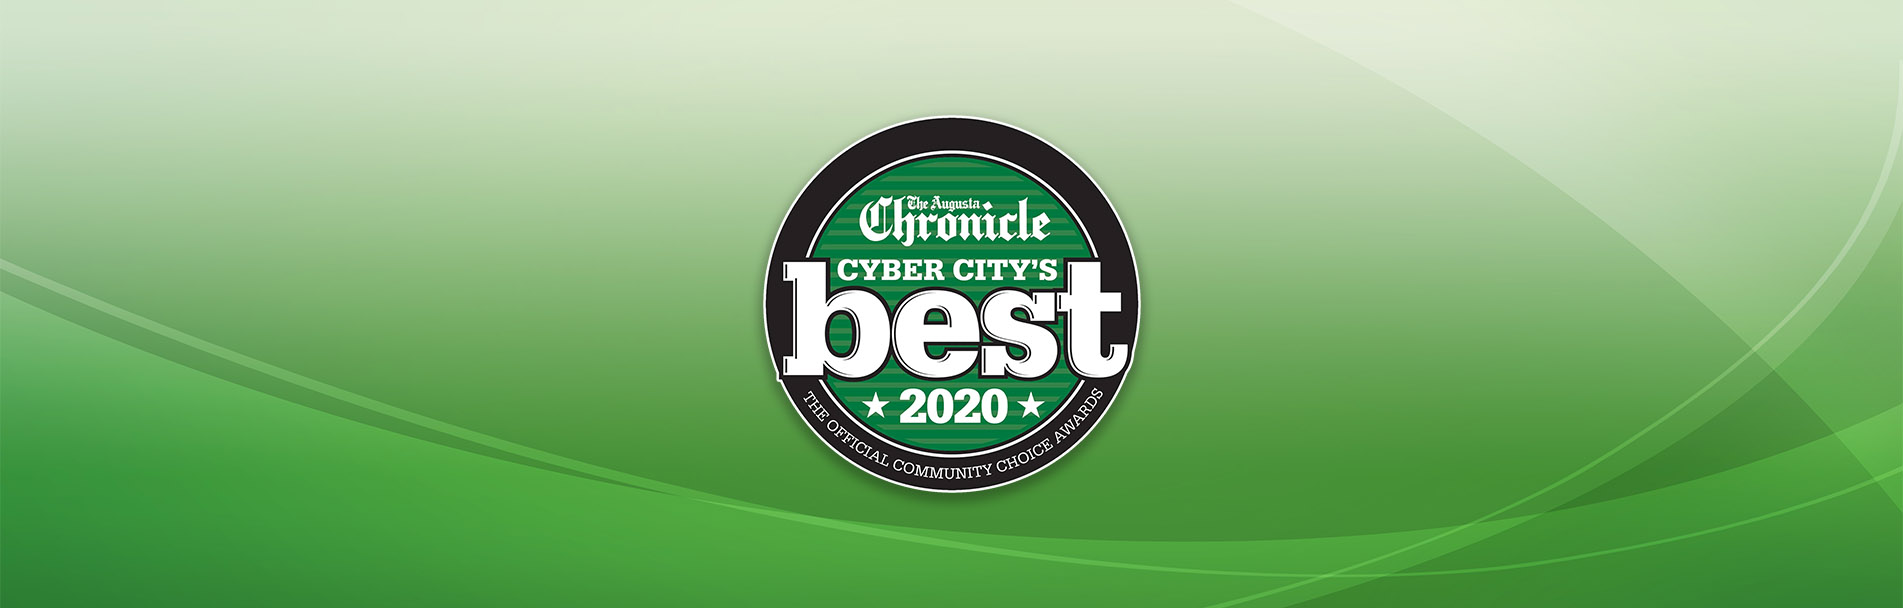 Banner - Cyber City's Best 2020 | Home